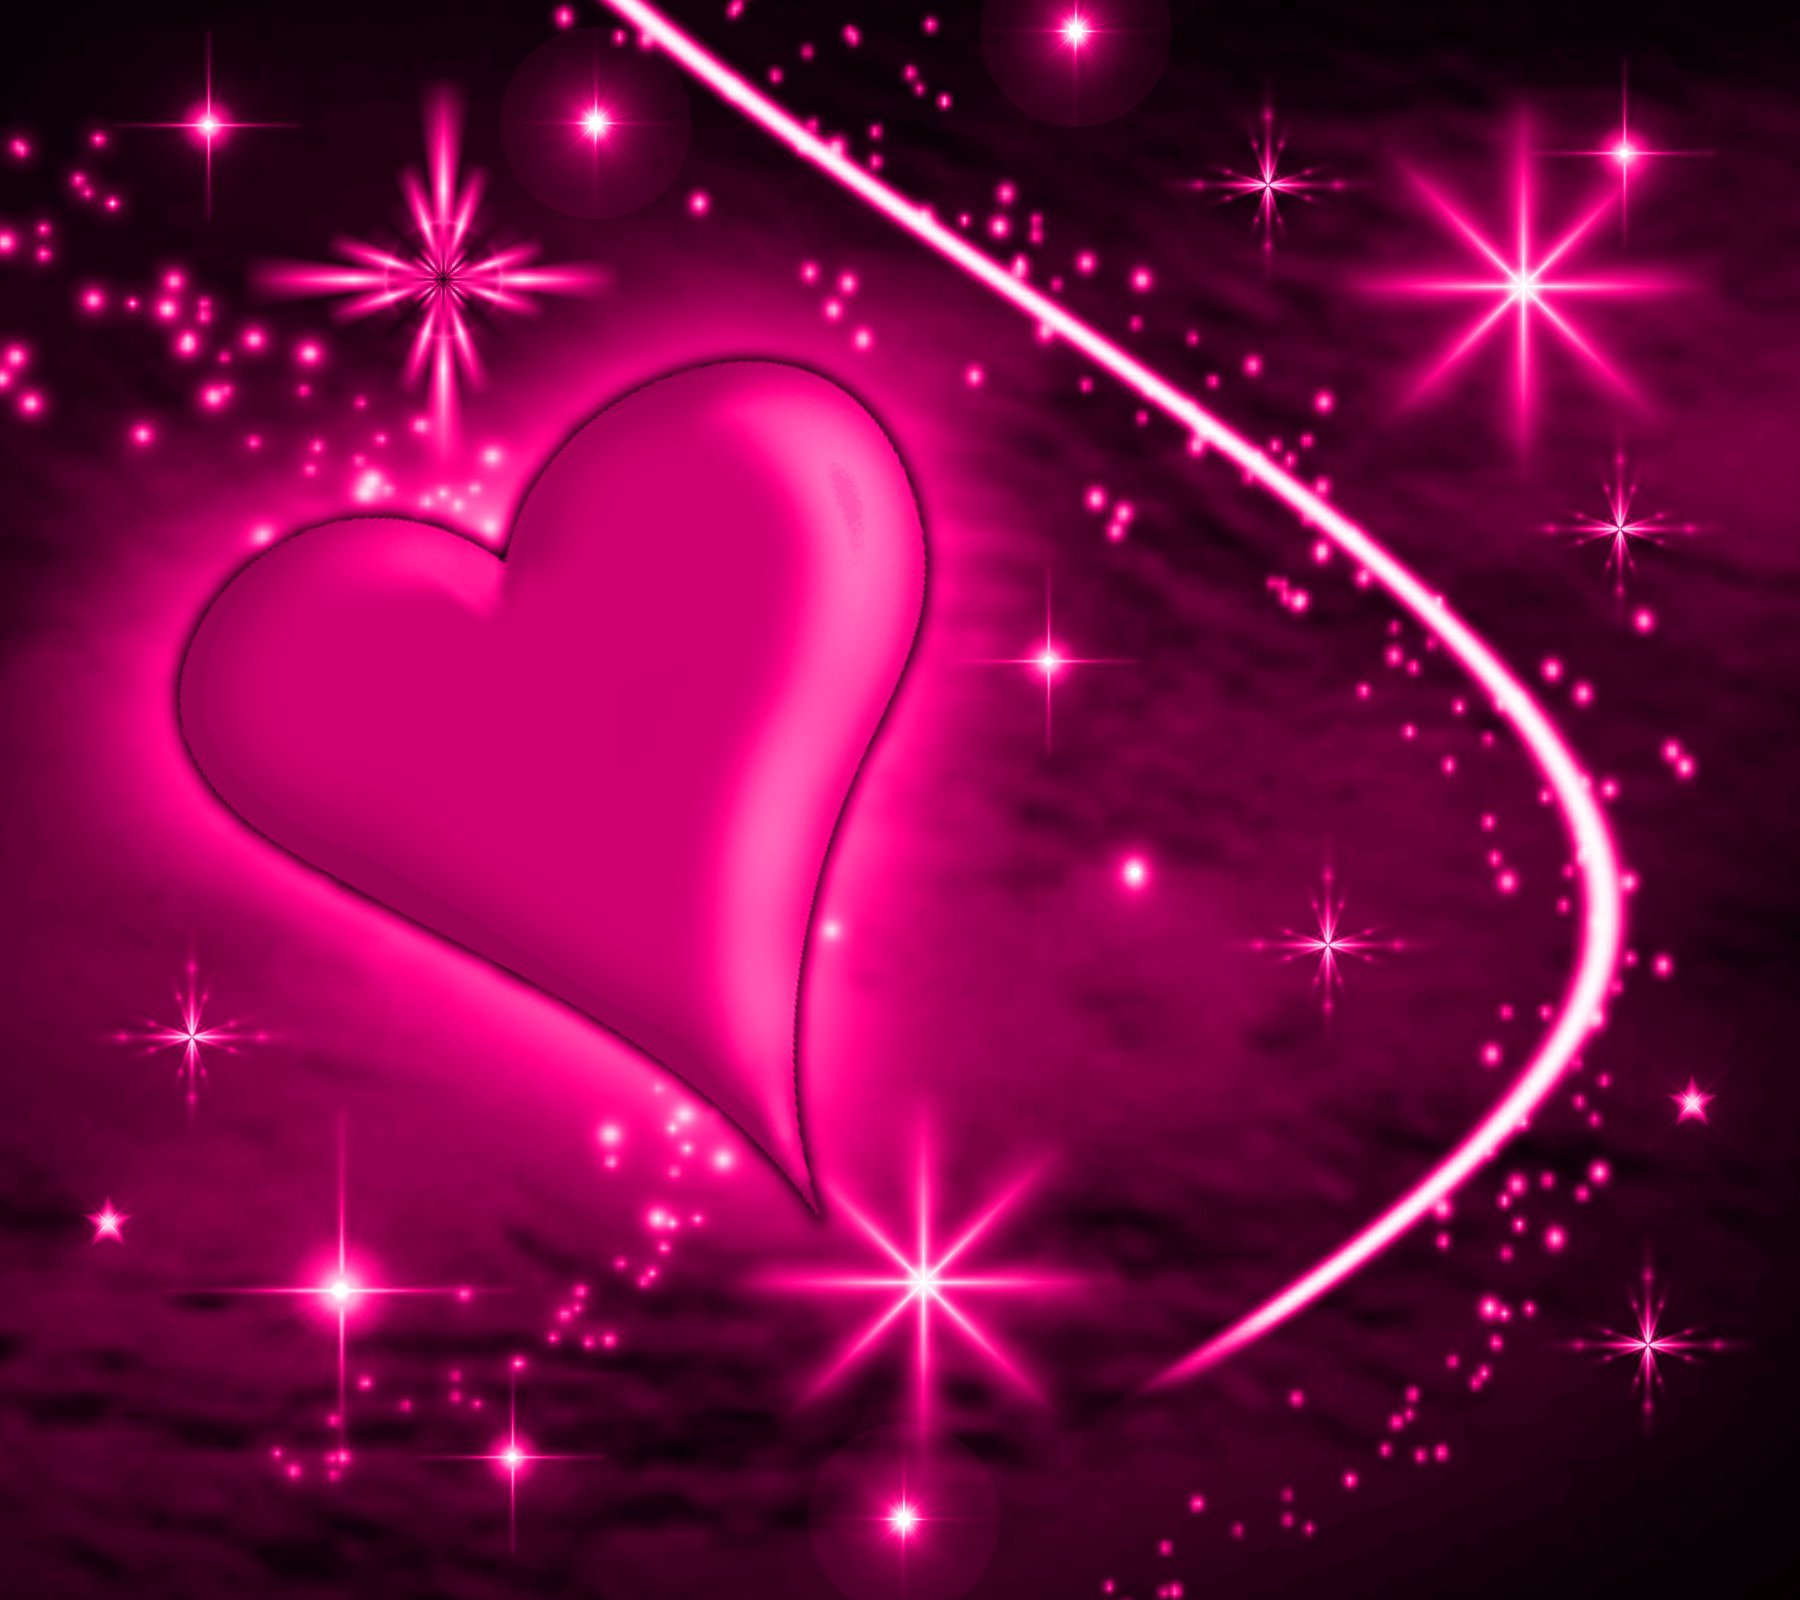 Pink heart with plasma stars background 1800x1600 background preview download thecheapjerseys Gallery